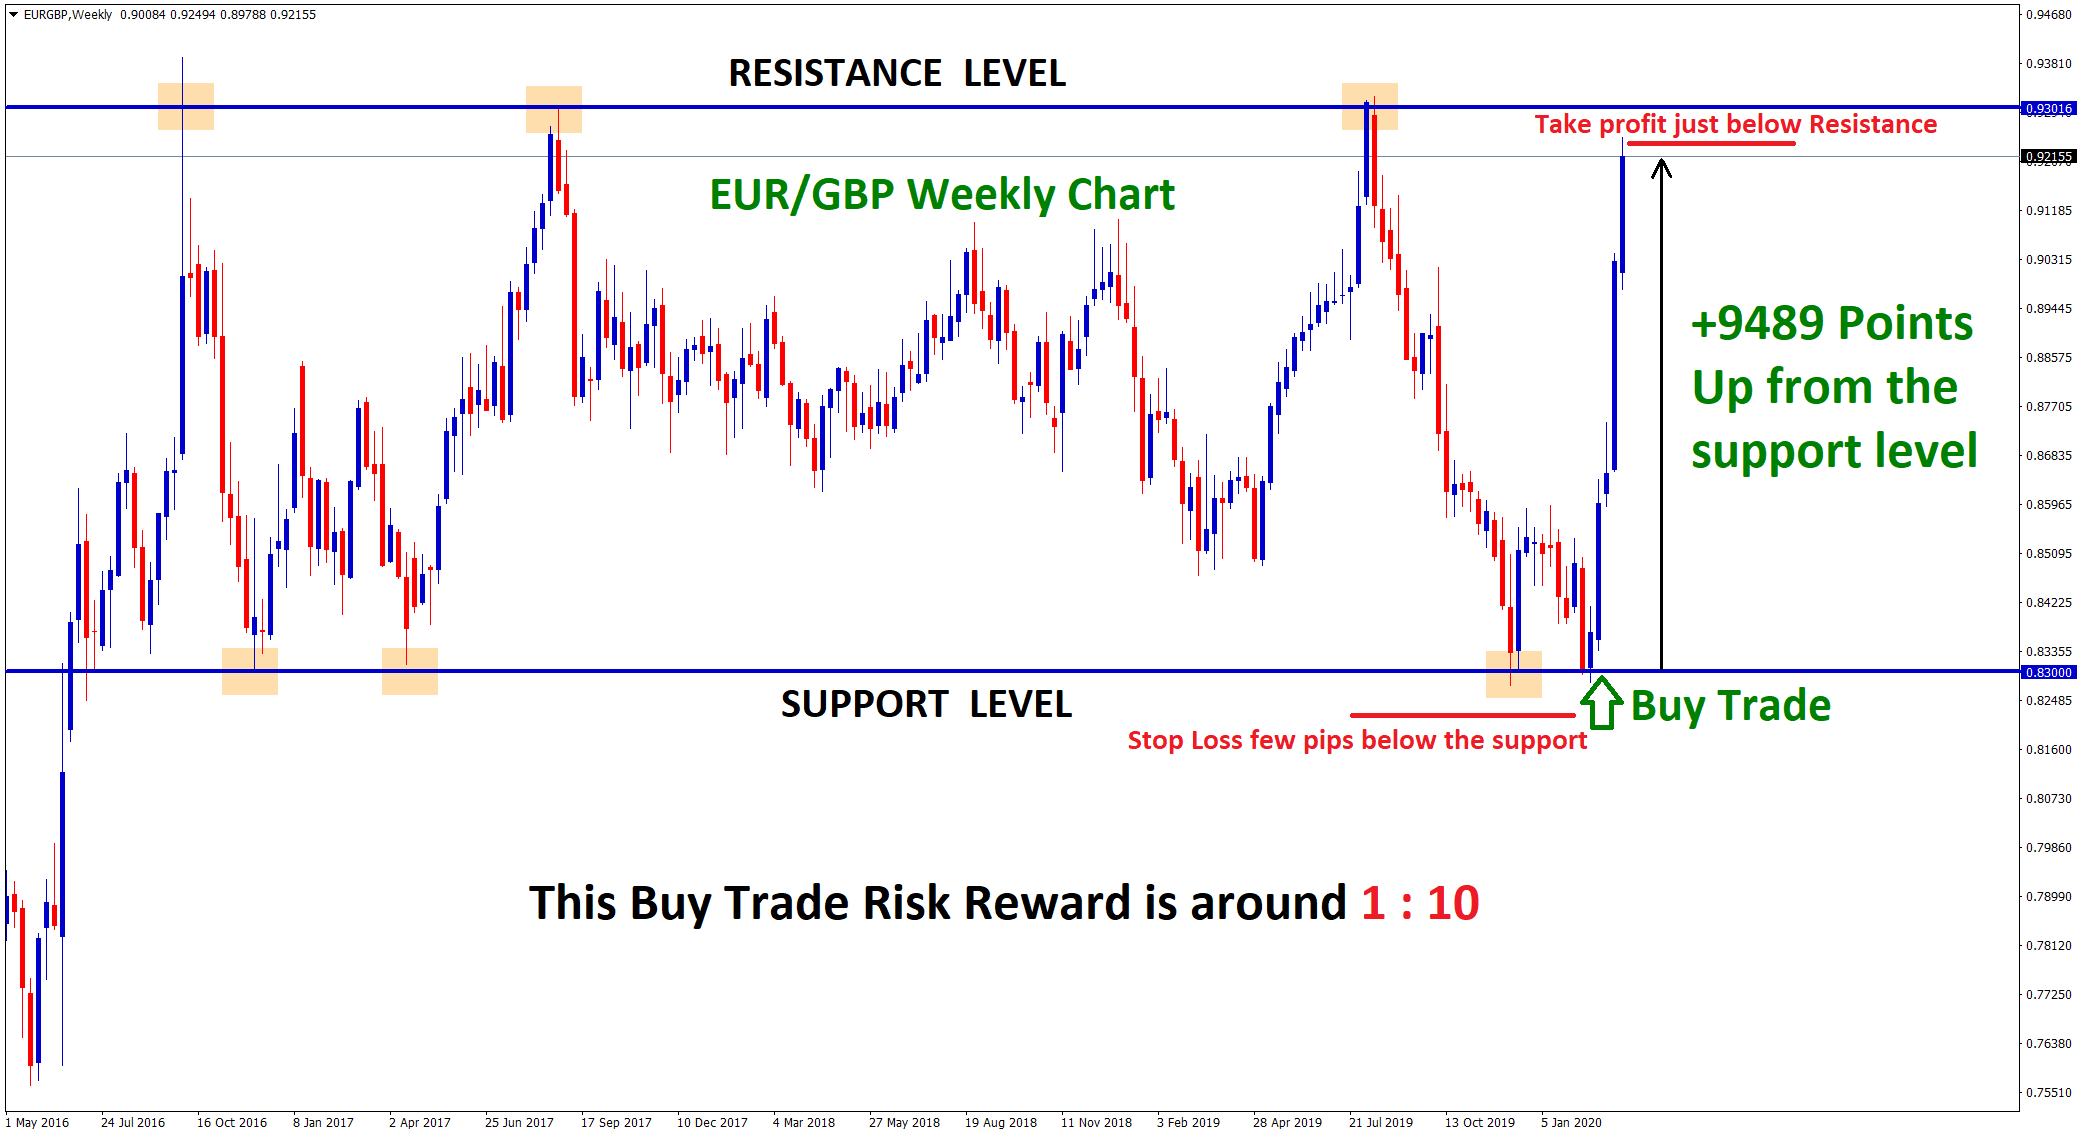 Buy trade at support, close at resistance in eurgbp weekly chart